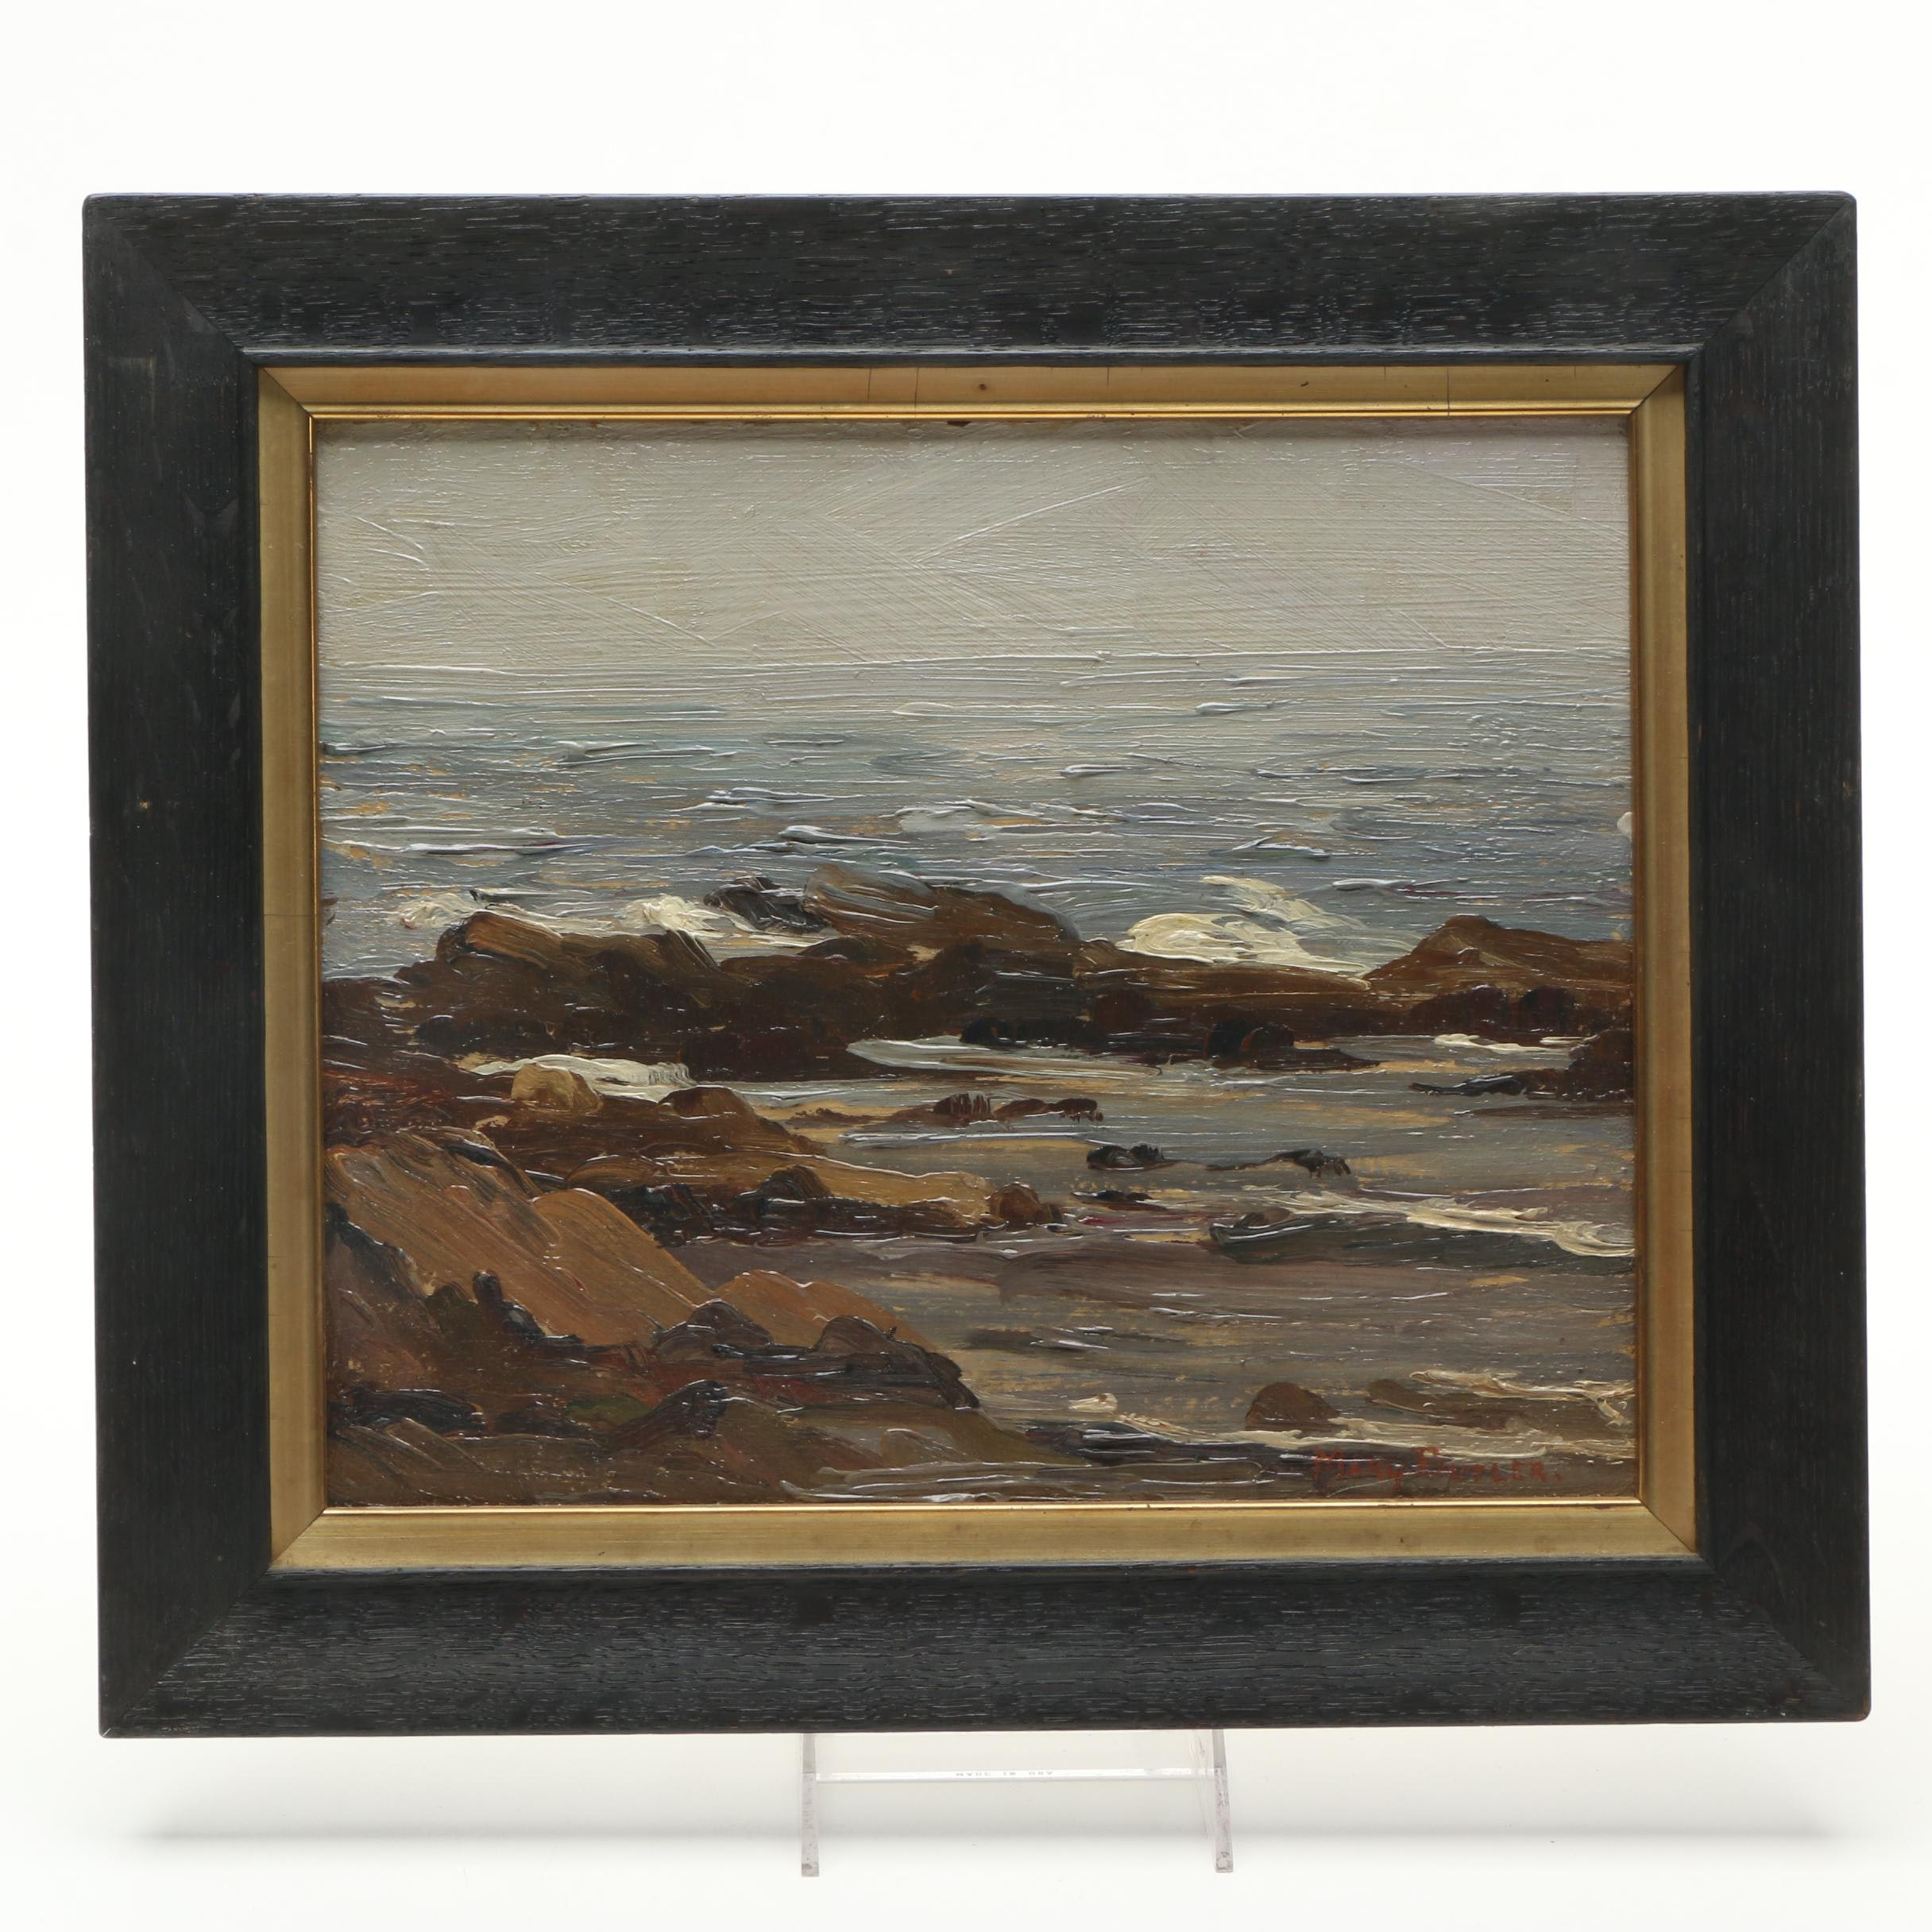 Mary Butler Oil Painting of a Waterfront Landscape